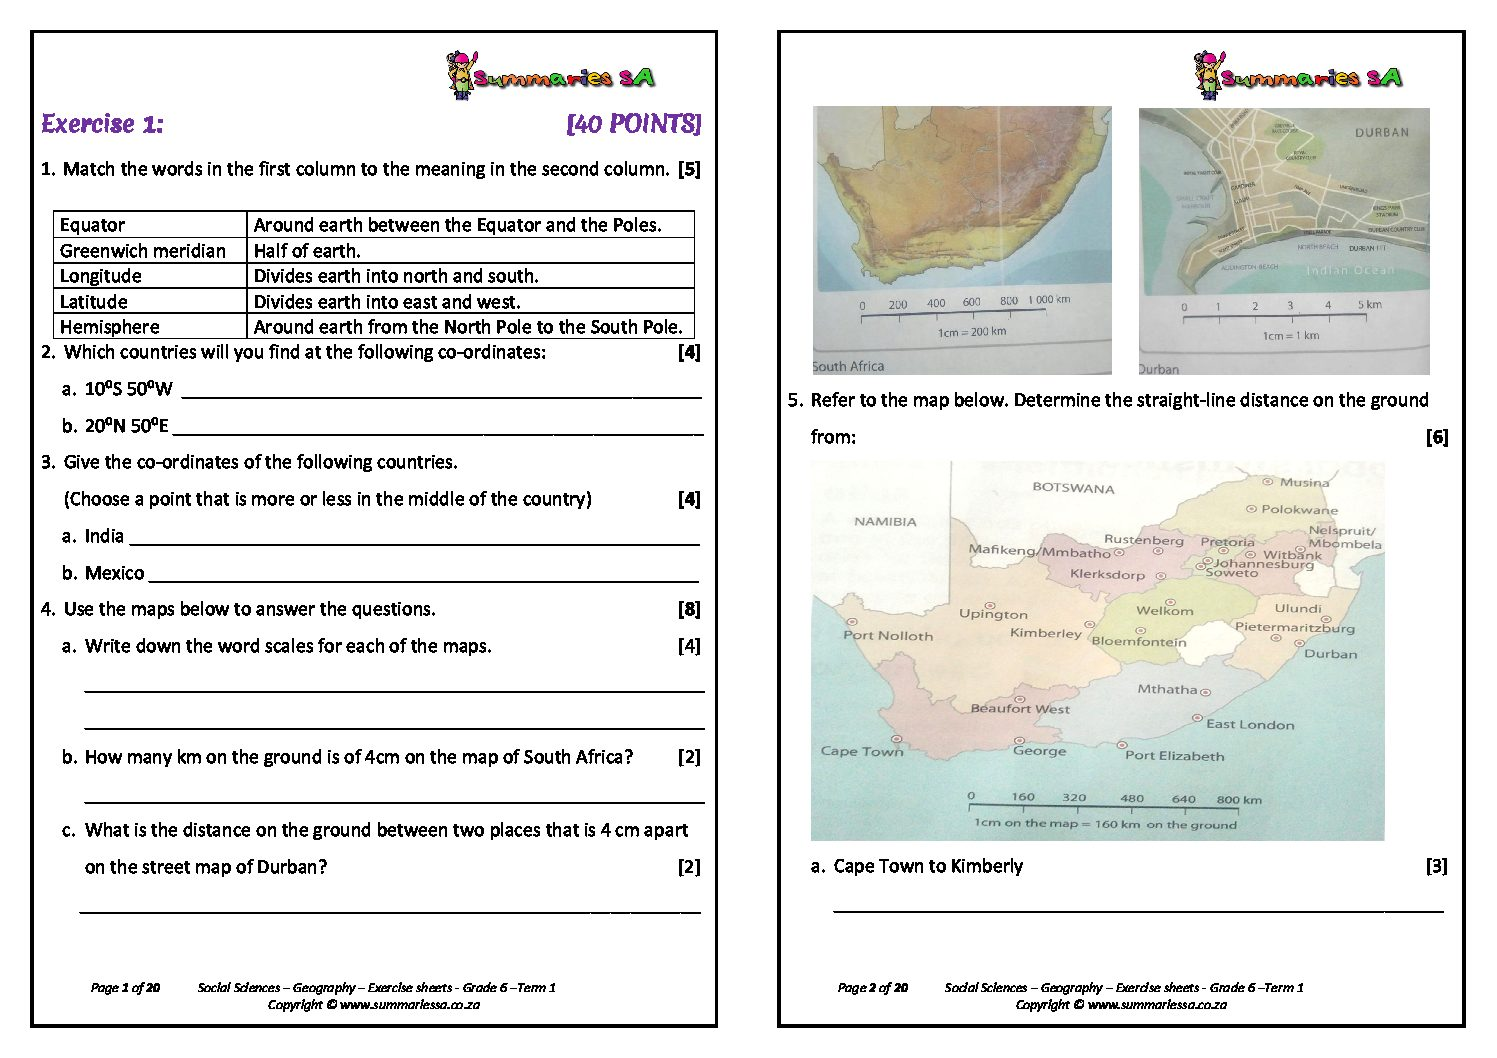 Grade 6 Social Sciences Geography Amp History Term 1